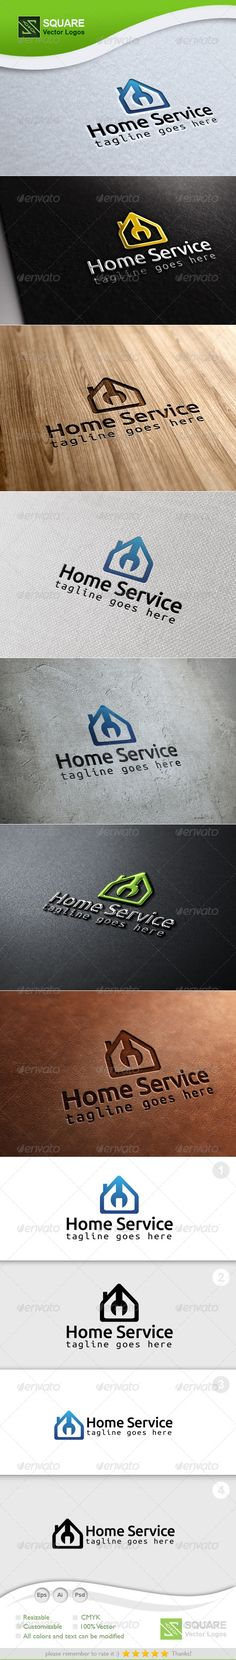 Home, Wrench Vector Logo Template by svlogos File Description This is custom logo template. Illustrator (AI), Photoshop (PSD), Vector (EPS) logo files included in this downloa